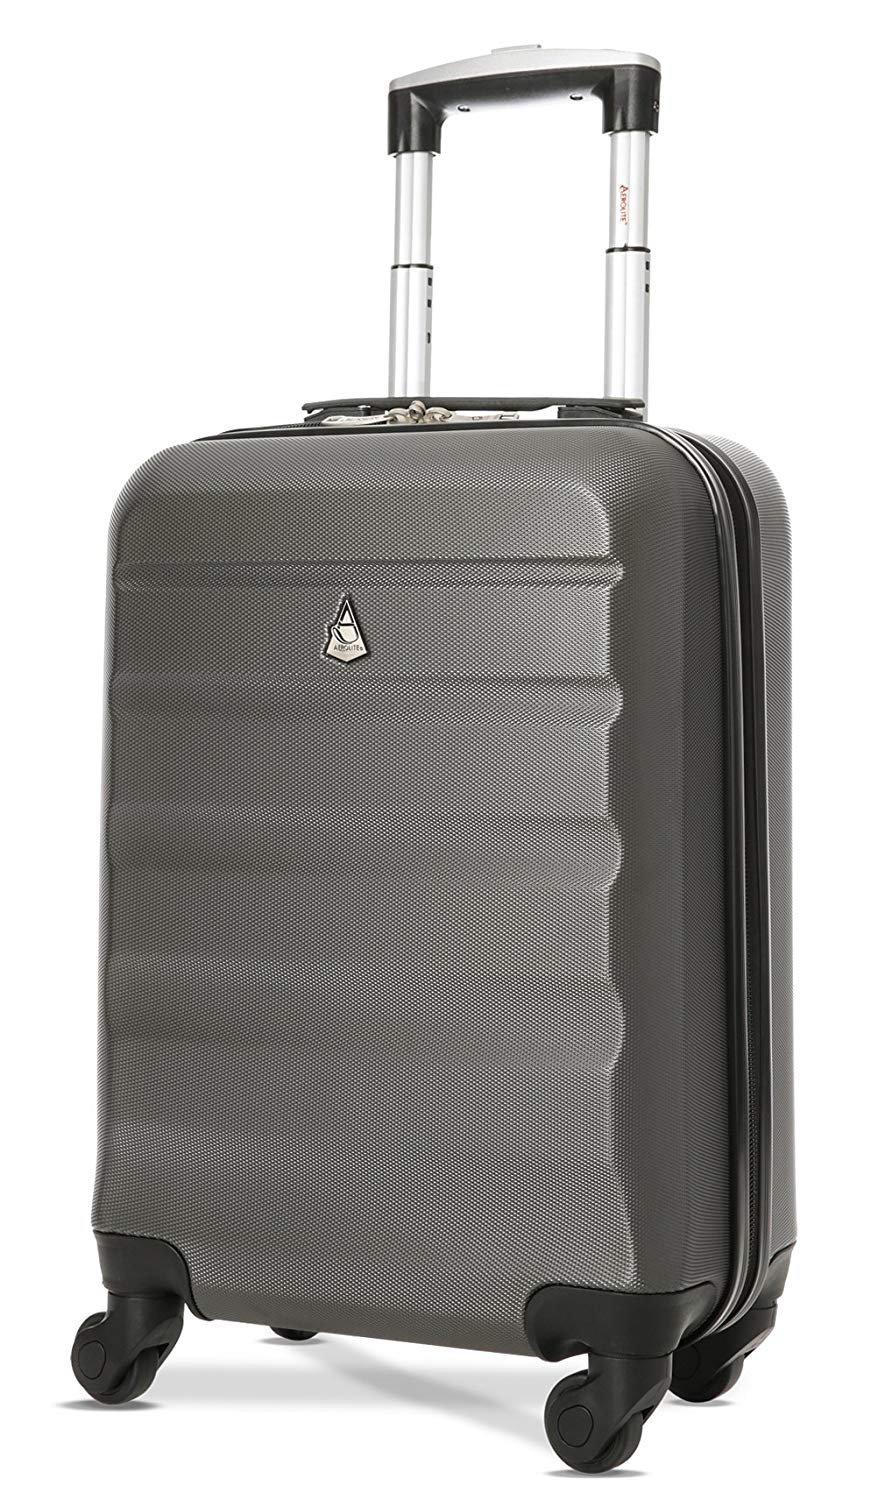 e8fa35e6b9 Large Capacity Maximum Allowance 22x14x9 Airline Approved by Delta United  Southwest   More Carry On Luggage Bag